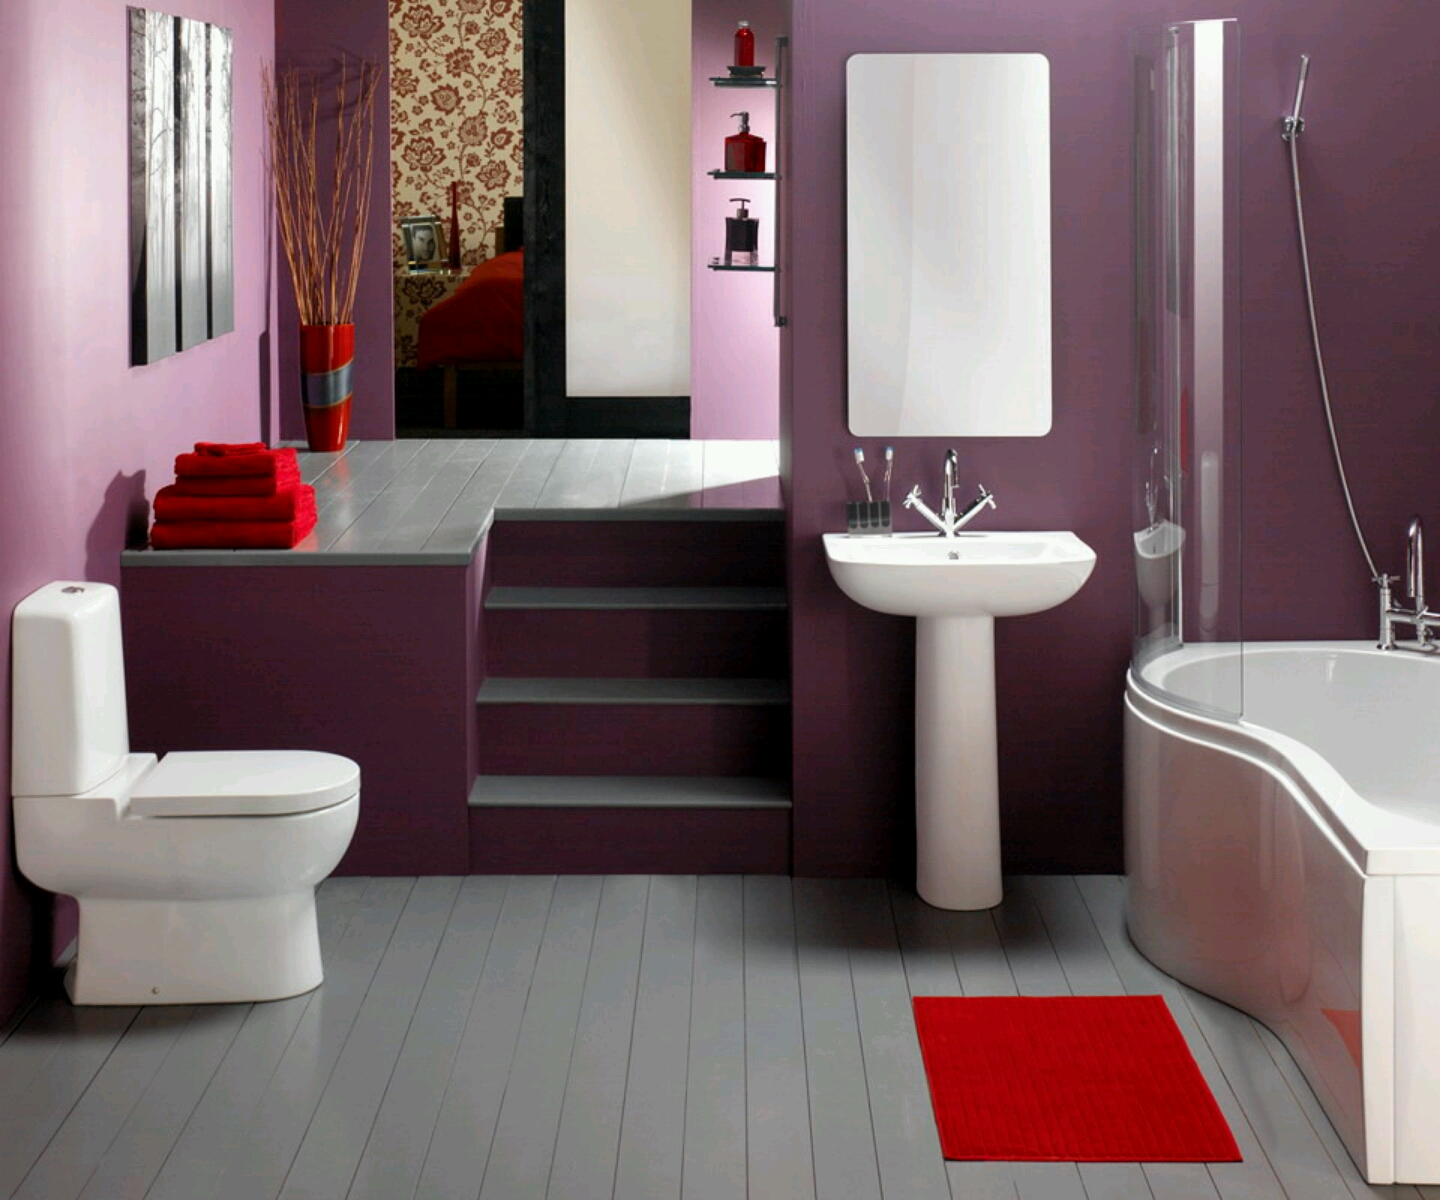 New home designs latest luxury modern bathrooms designs for New bathroom design